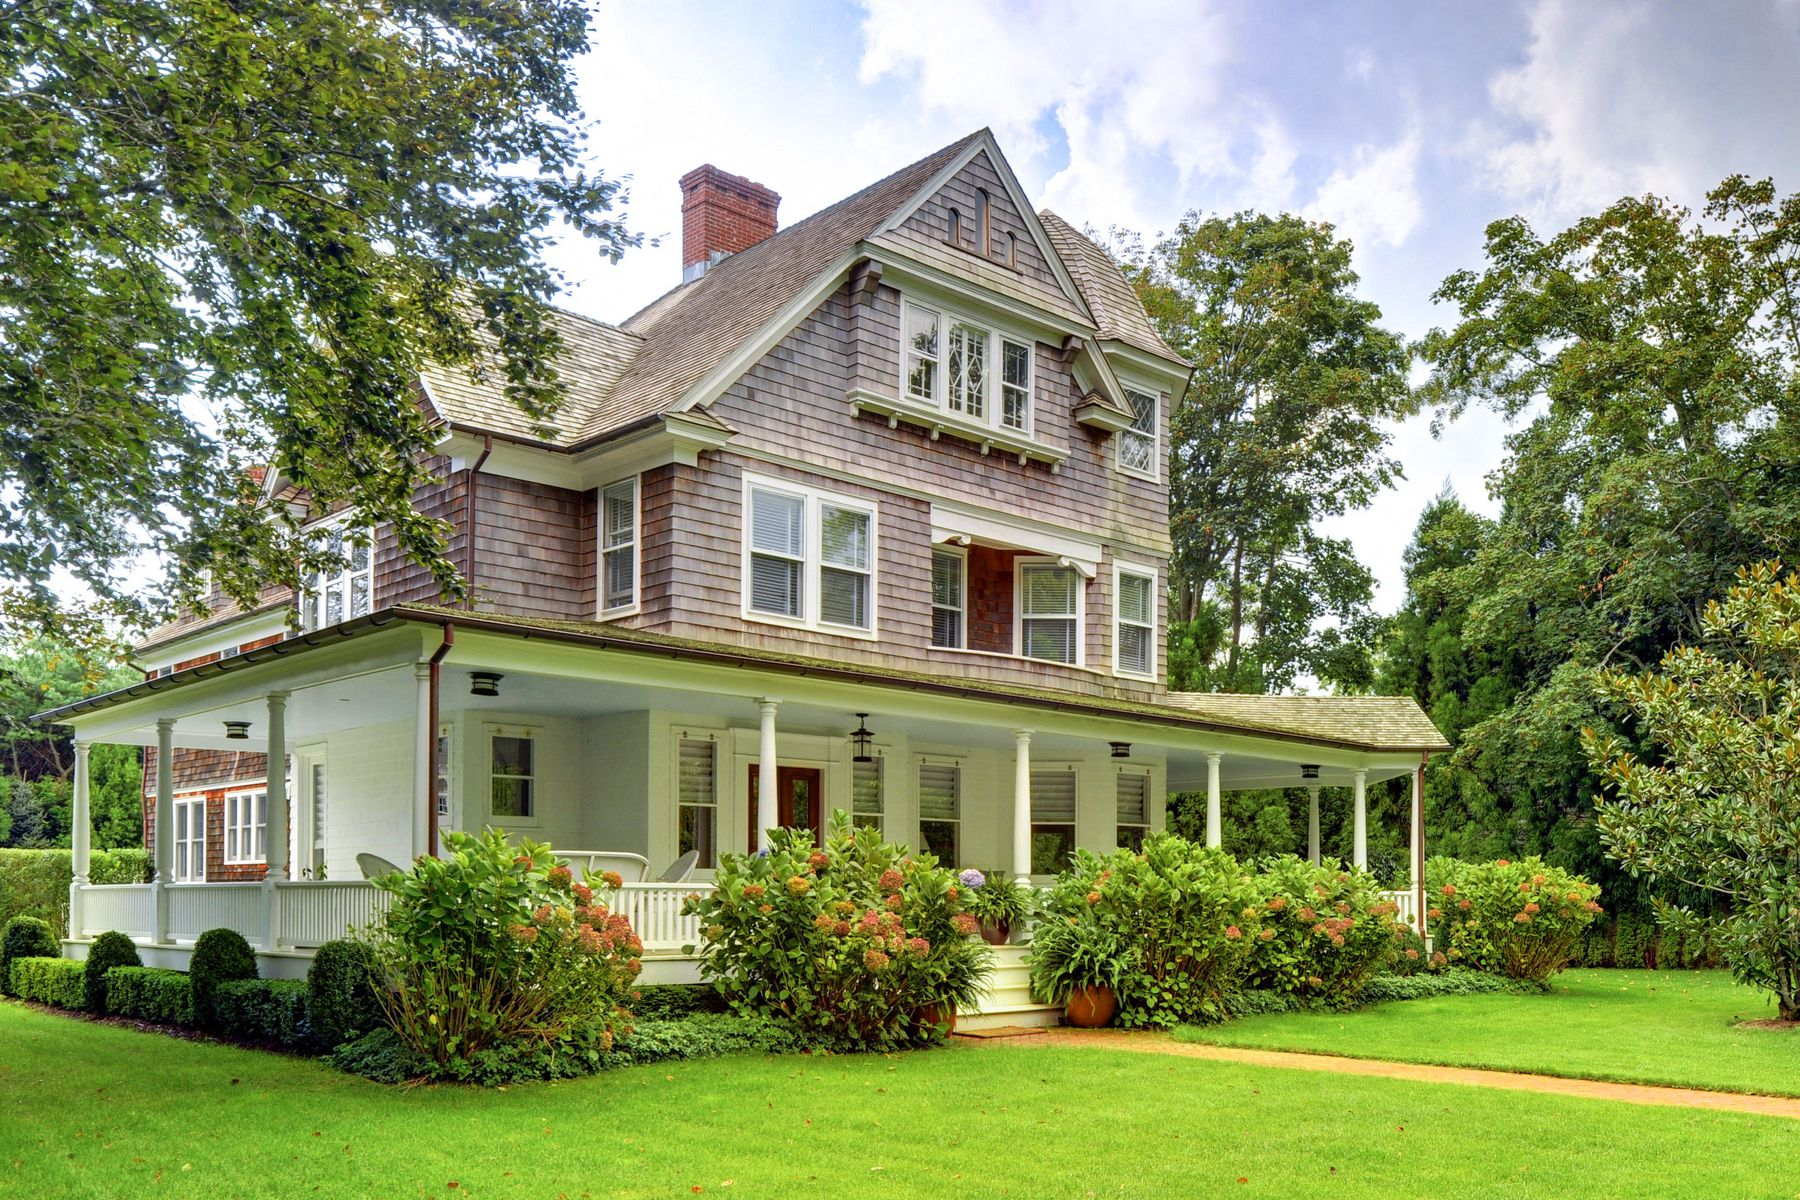 Single Family Homes for Sale at PRIME VILLAGE SOUTH LOCATION 29 Huntting Lane East Hampton, New York 11937 United States